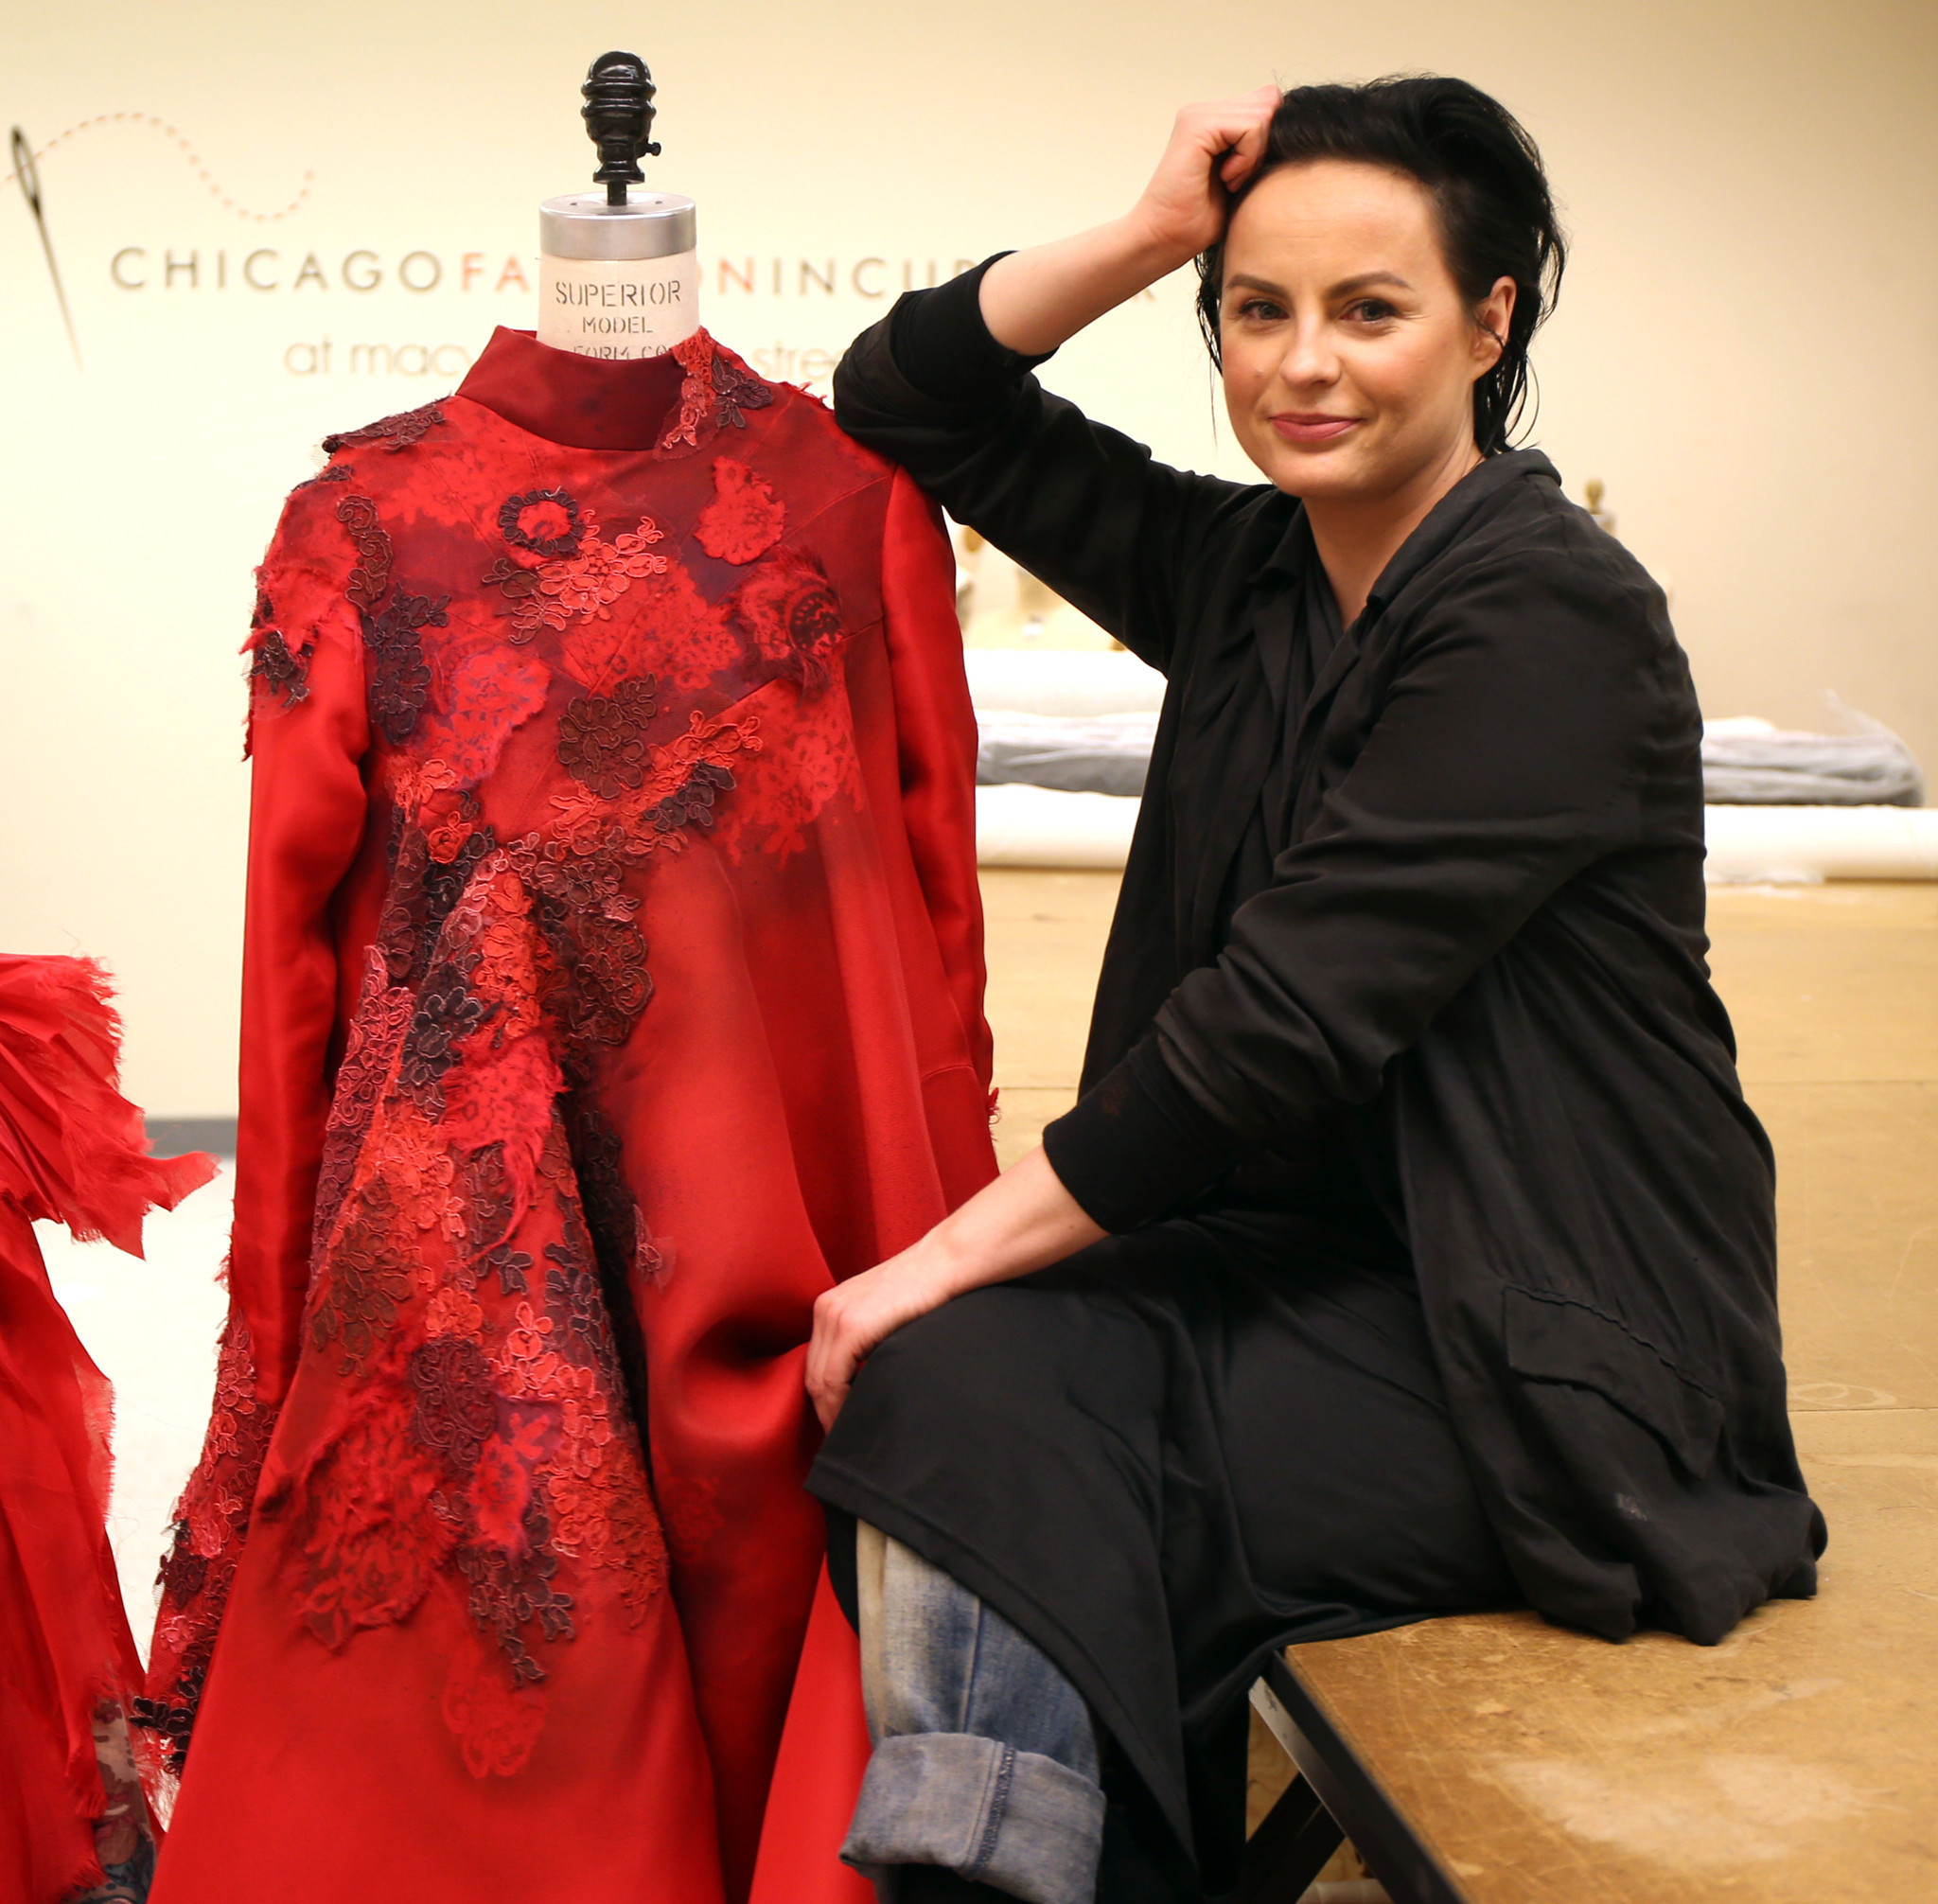 Chicago designer — and her dress — to make NY Fashion Week debut ...